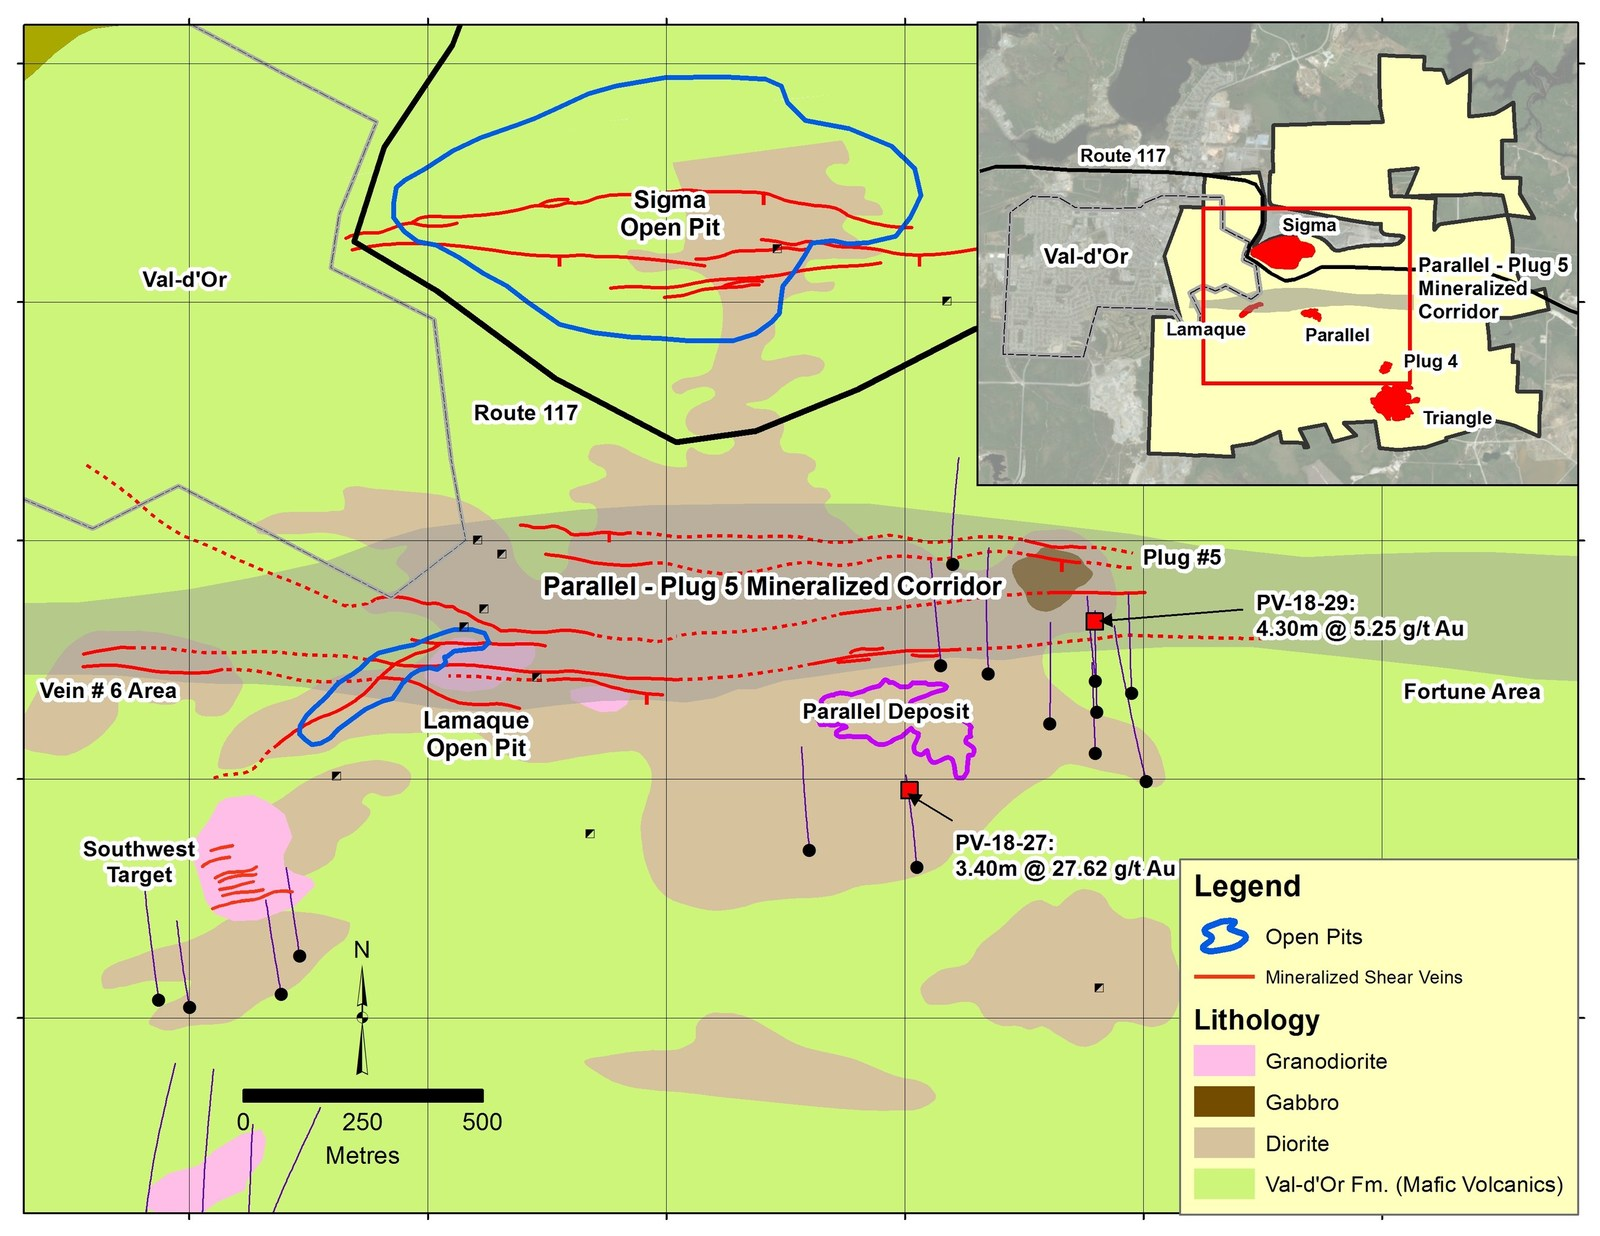 Figure 4: Geological map of Lamaque-Parallel-Plug 5 area showing surface traces of drillholes completed in current program.  For clarity, historical drillholes are excluded.  Mineralized corridor dips moderately to the south, such that both the Parallel Deposit and intercept shown in drillhole PV-18-27 lie within it.